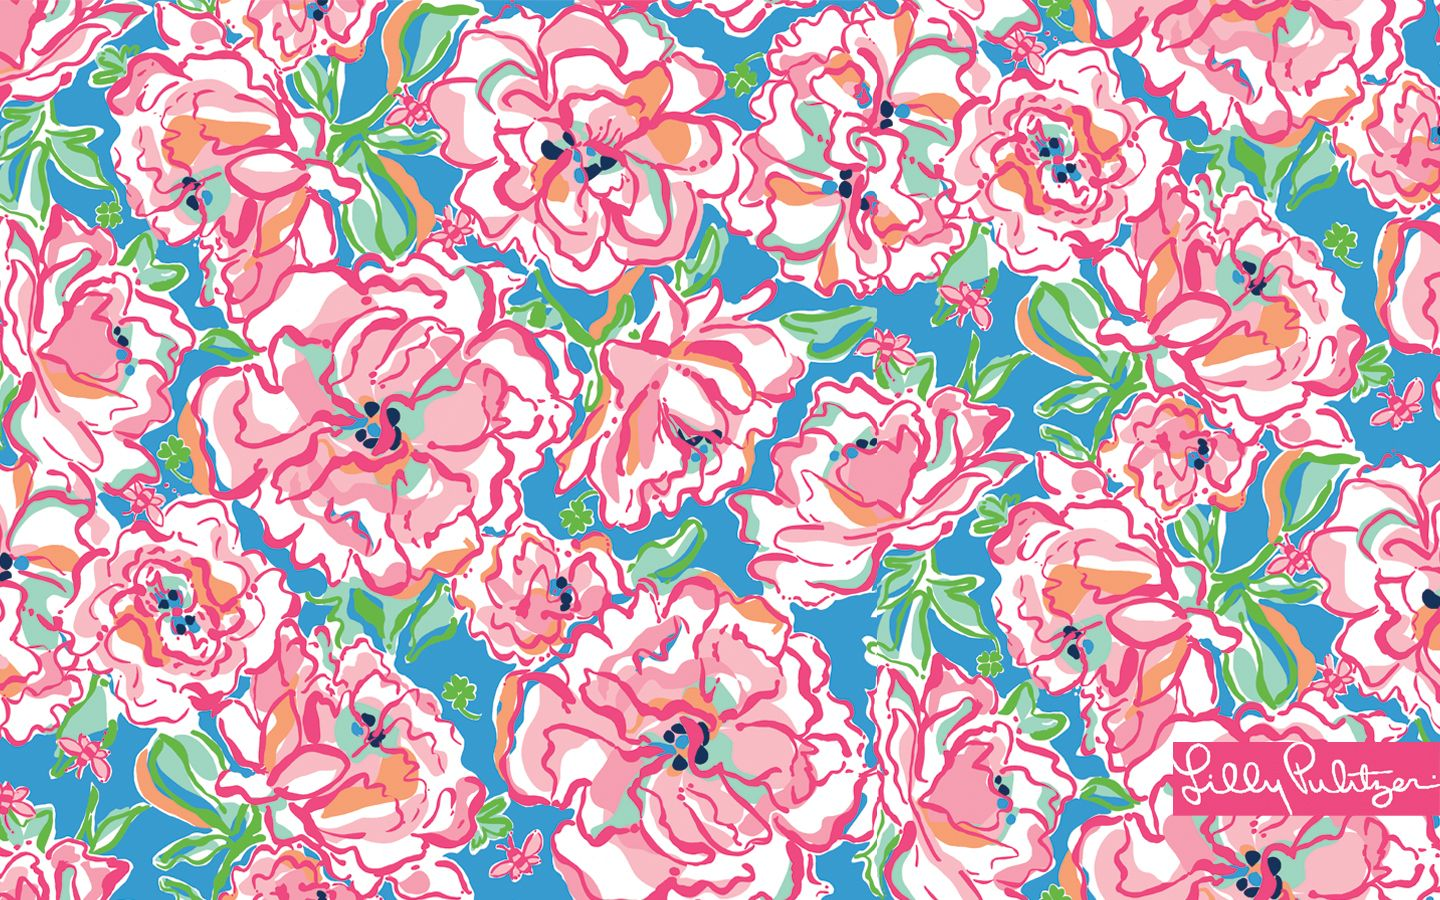 Lilly Pulitzer Desktop Wallpaper This Wallpapers Lilly Prints Lilly Pulitzer Prints Lilly Pulitzer Patterns